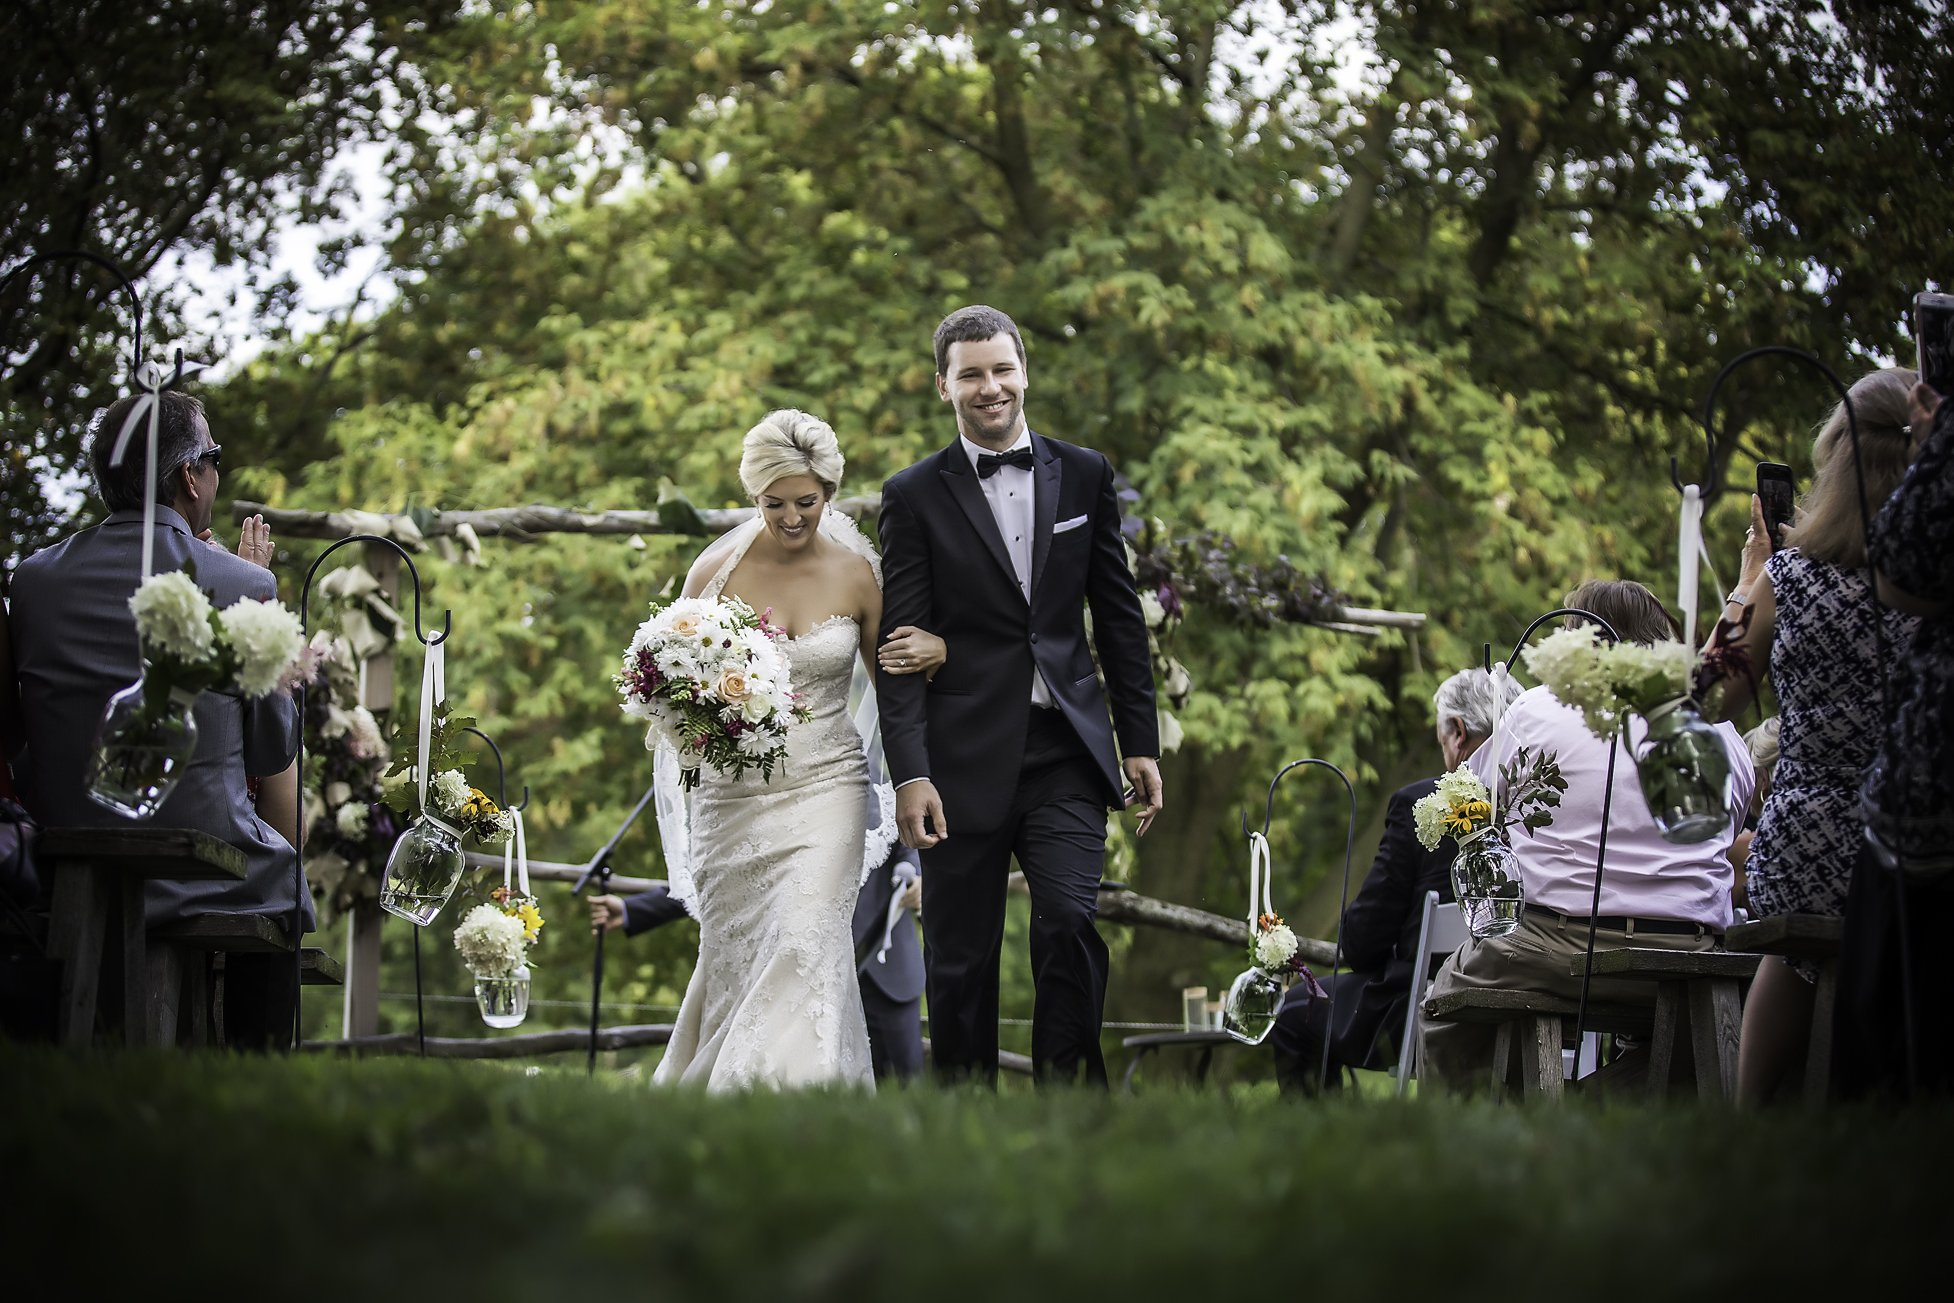 : outdoor wedding, wedding planning, outside wedding